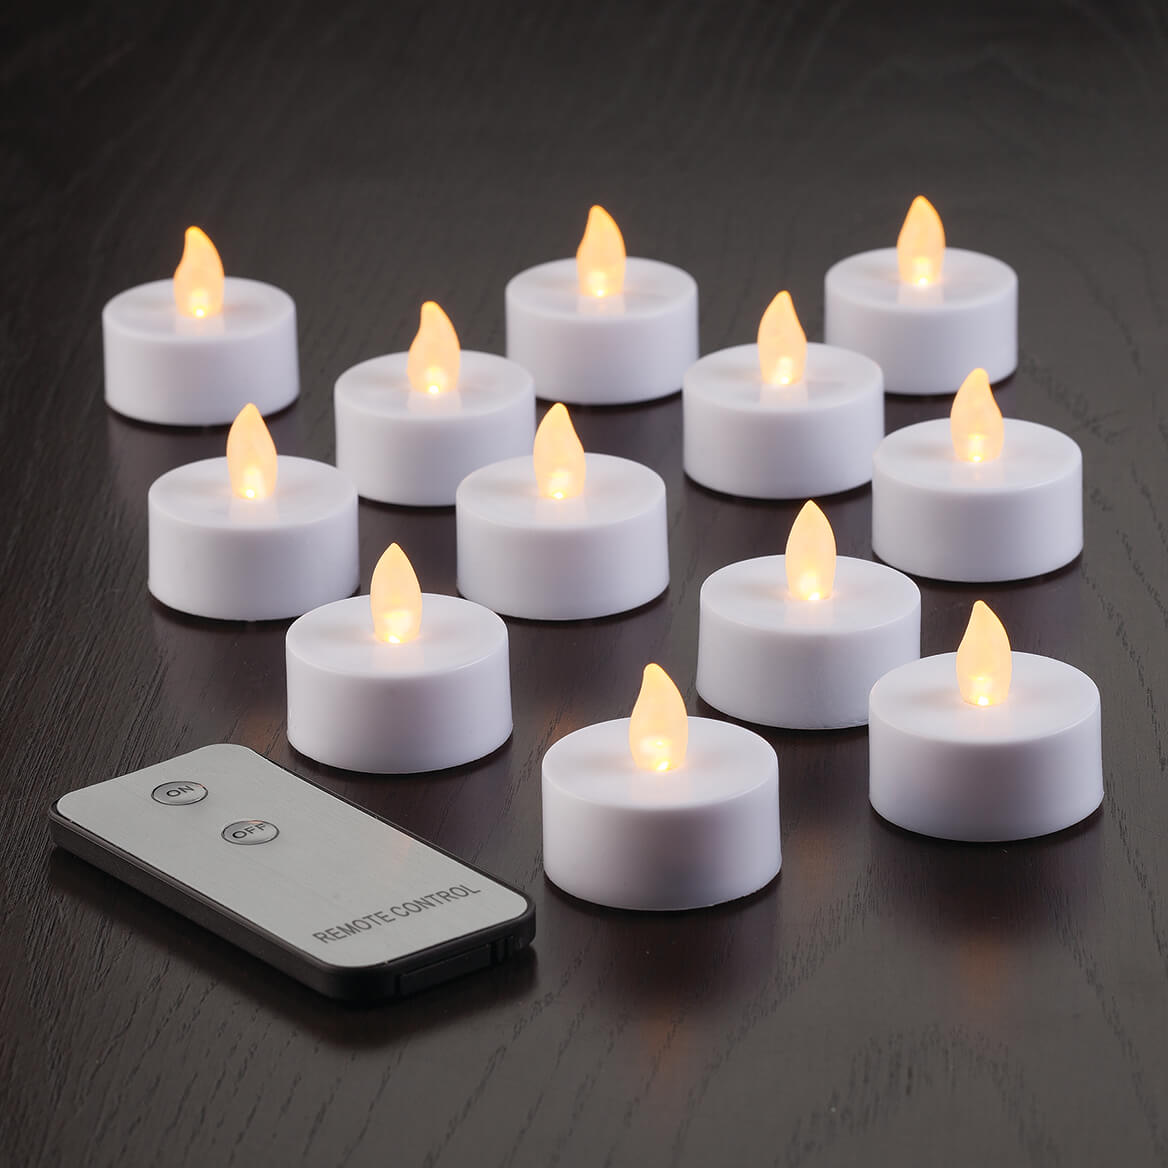 Tea Lights with Remote Control, Set of 12-364533